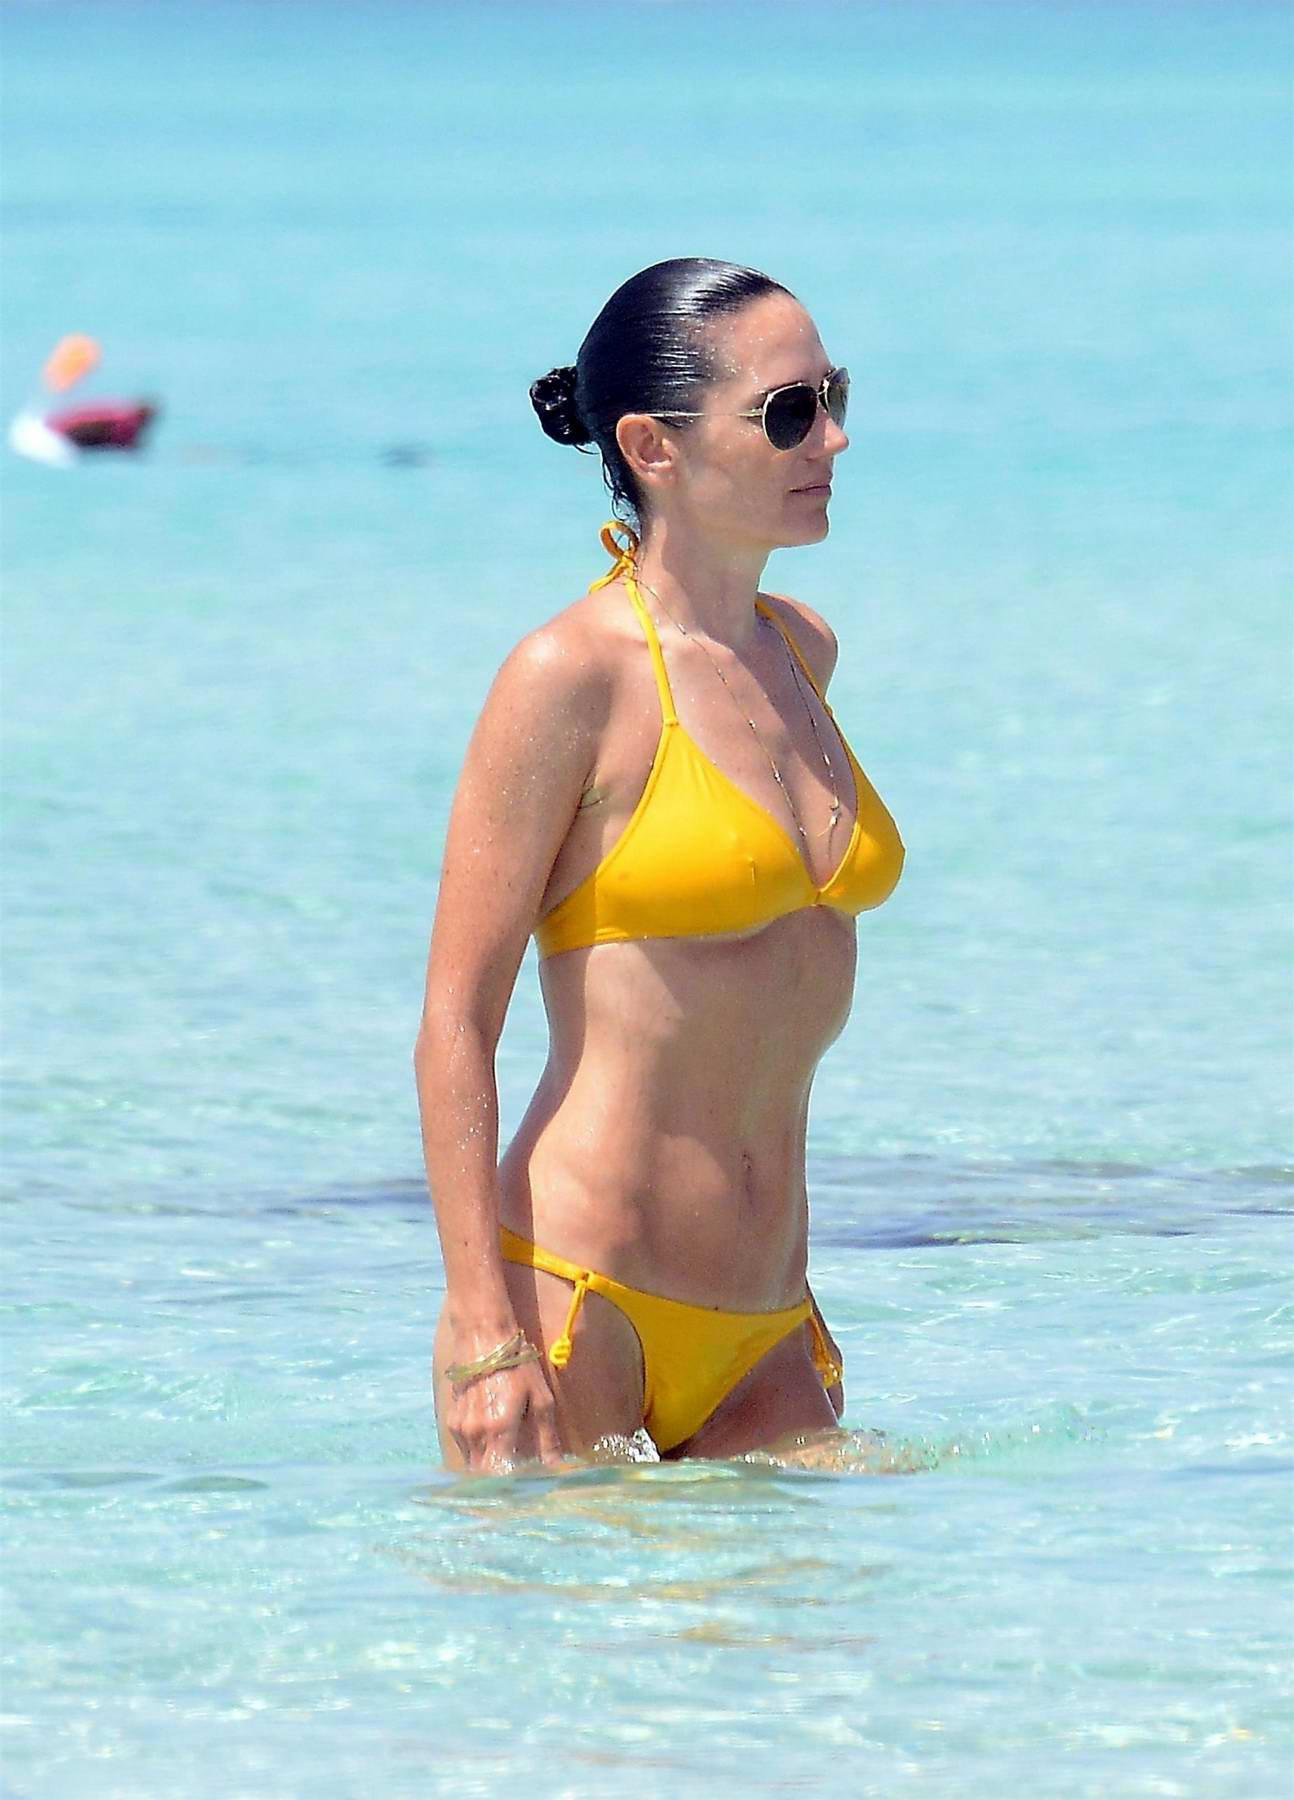 Jennifer Connelly in a yellow bikini enjoying the ocean while on holiday in Spain